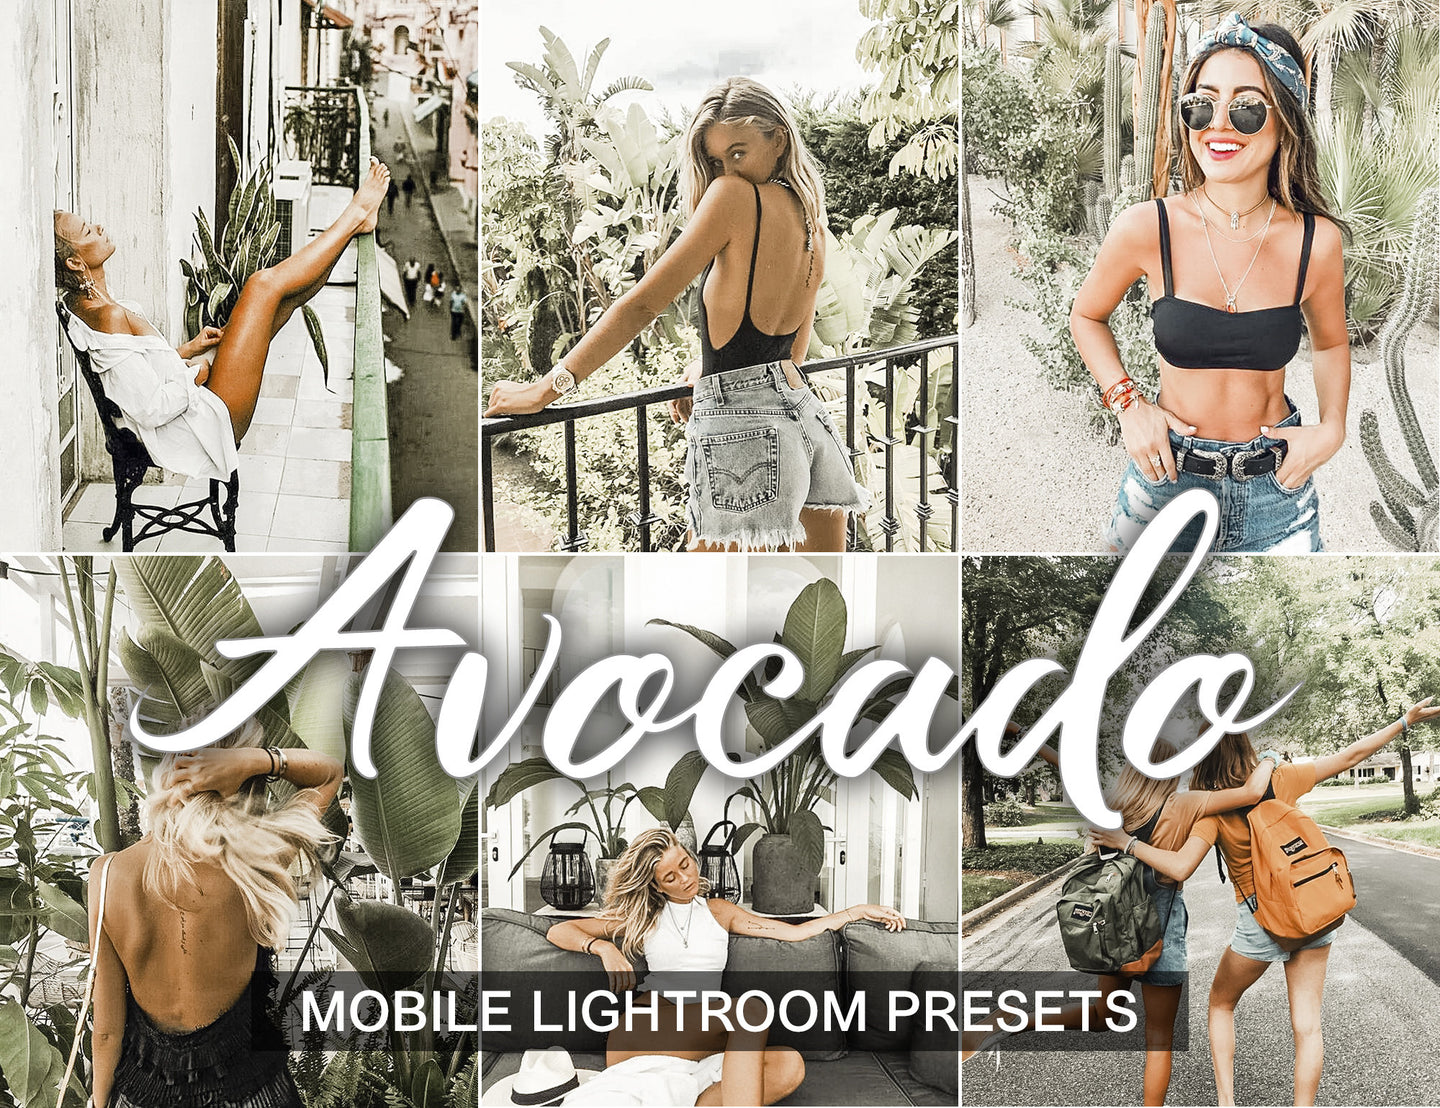 3 Lightroom Presets Avocado - lightroom mobile preset - KatManDooPRESETS